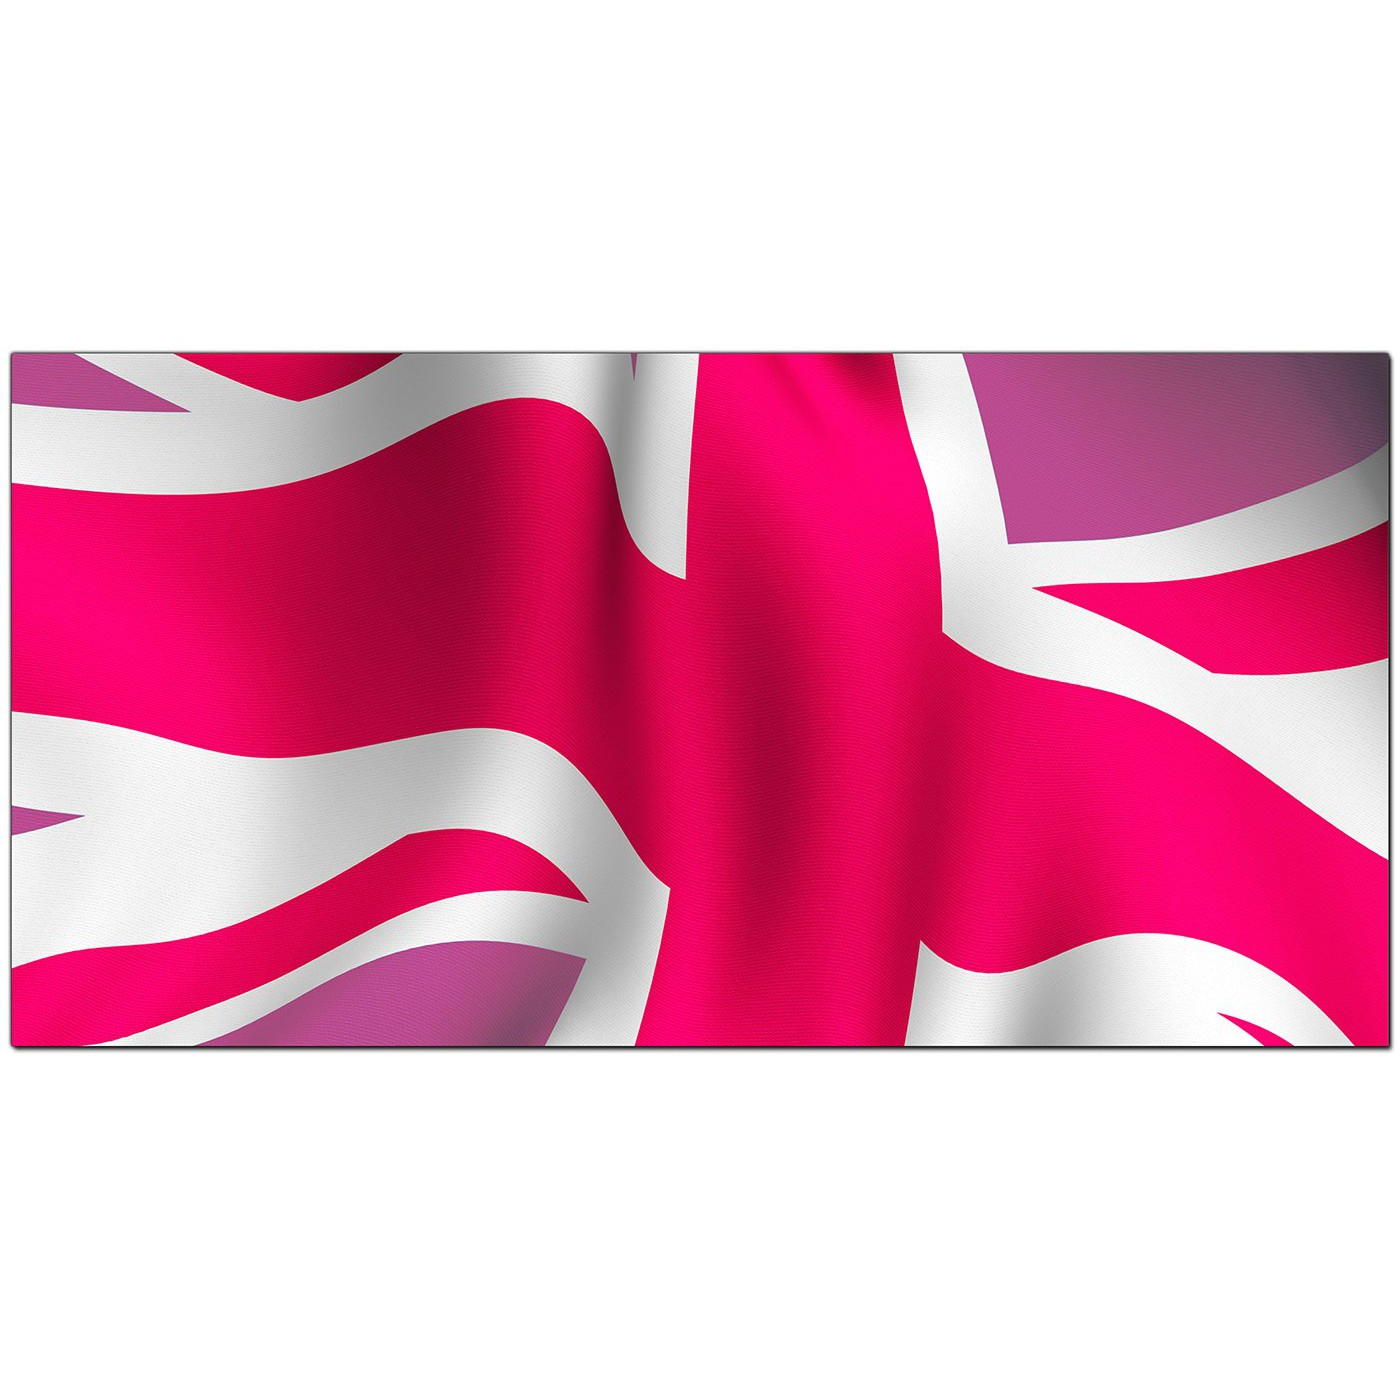 Large Pink Canvas Wall Art Of The Union Jack 1012